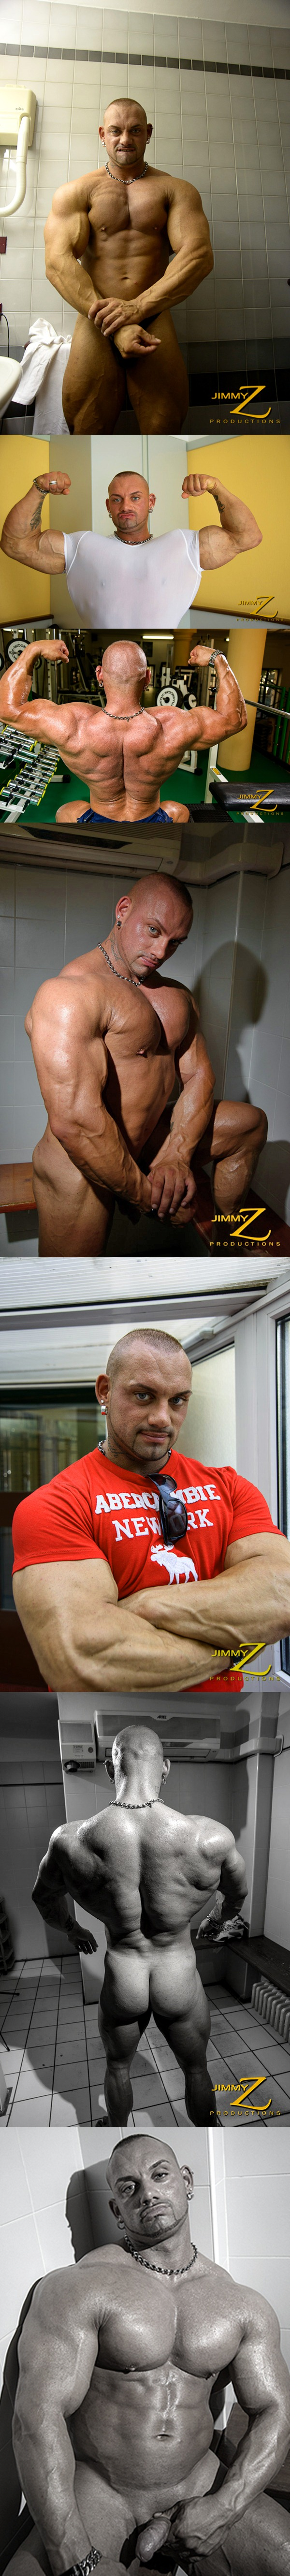 German bodybuilder Sash V has a Muscle Show-Off at Jimmyzproductions 01